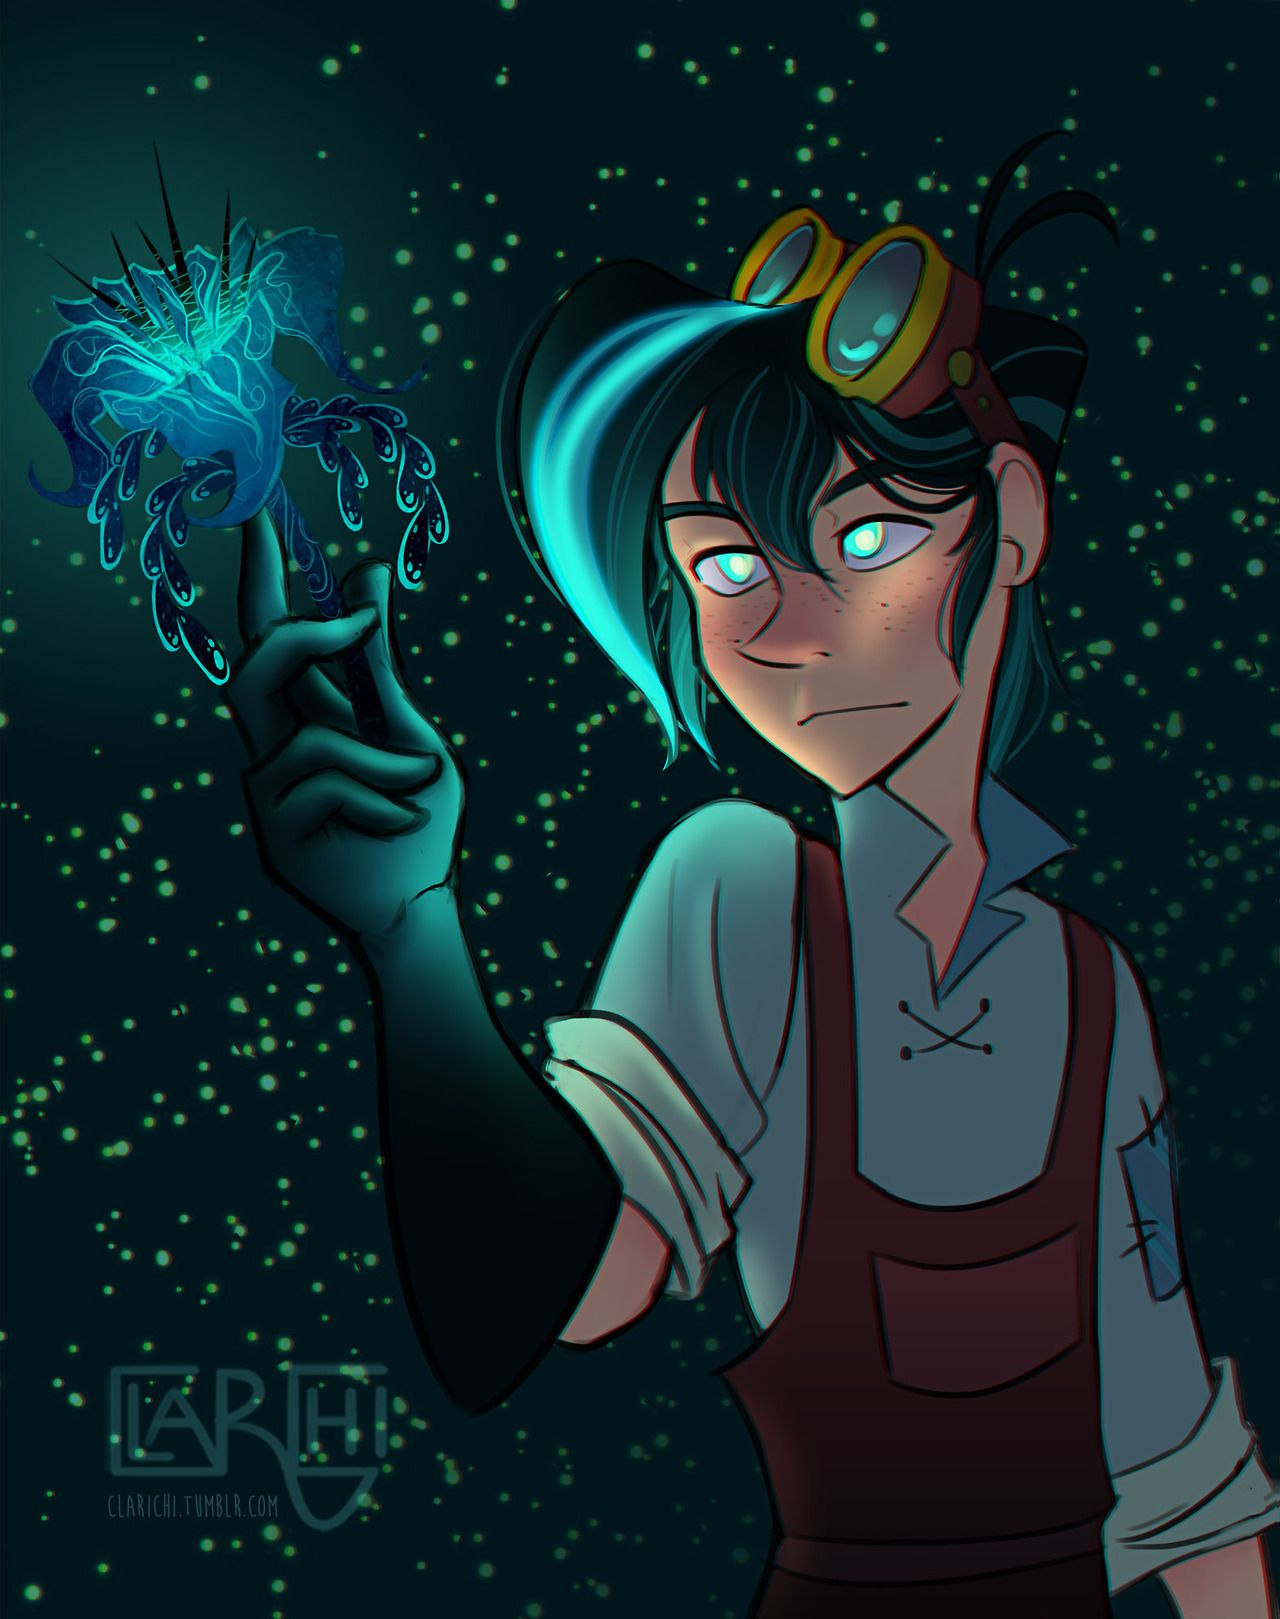 The Power Of The Moondrop Inspired By Snowprincess Artist Moon Varian Theory Disney Tangled Tangled Disney And Dreamworks